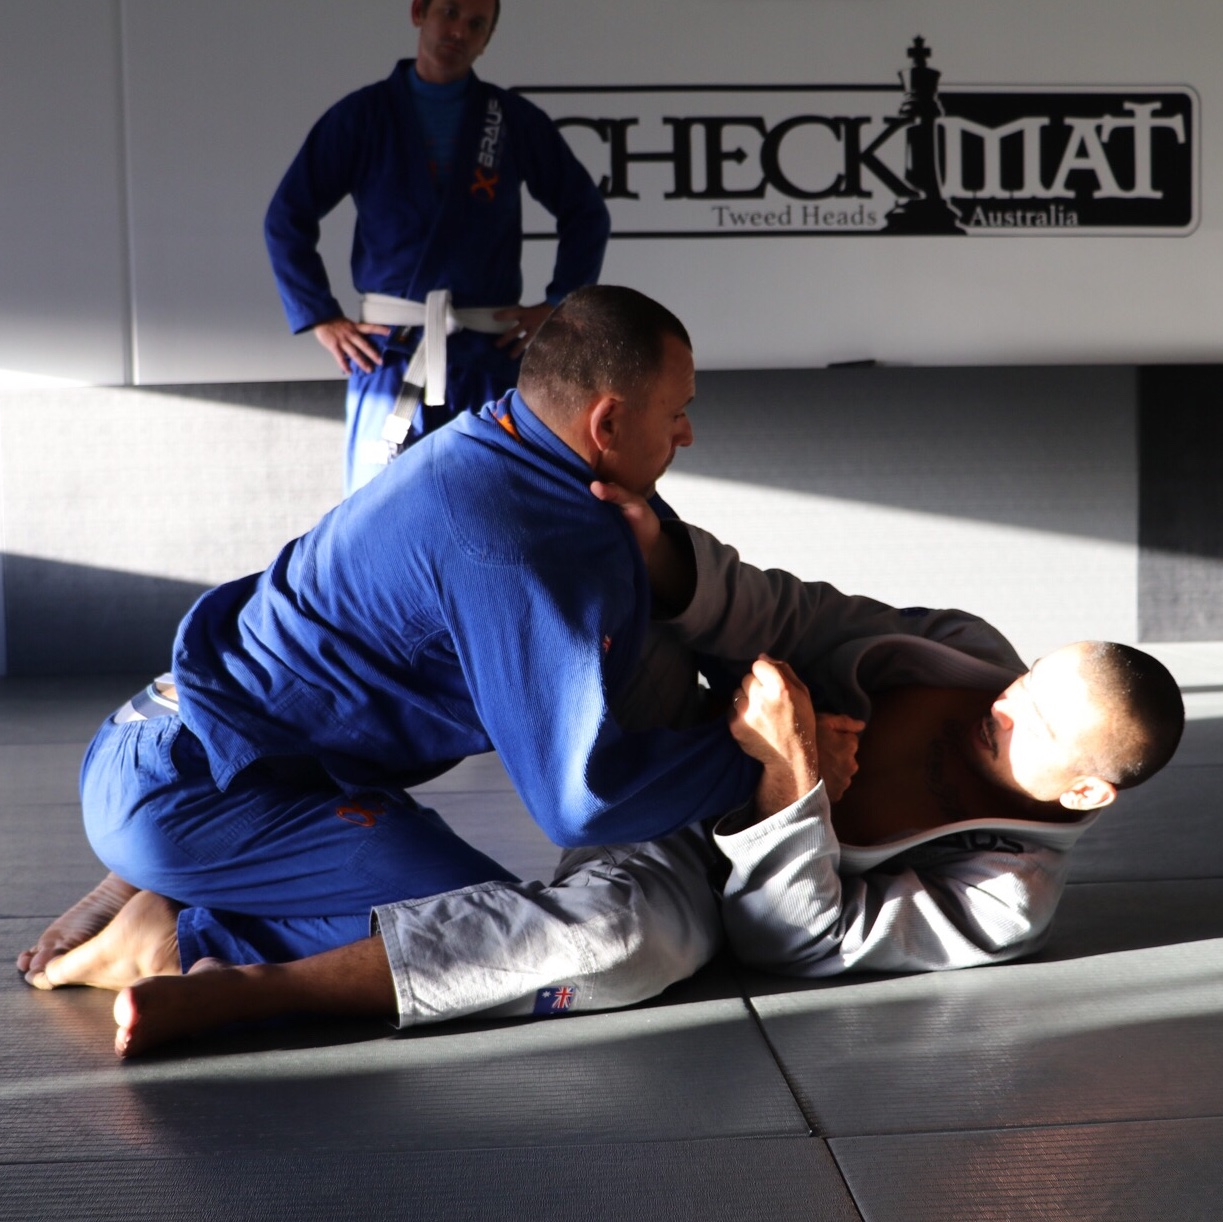 Adult's Jiu-Jitsu classes in Tweed Heads and Gold Coast